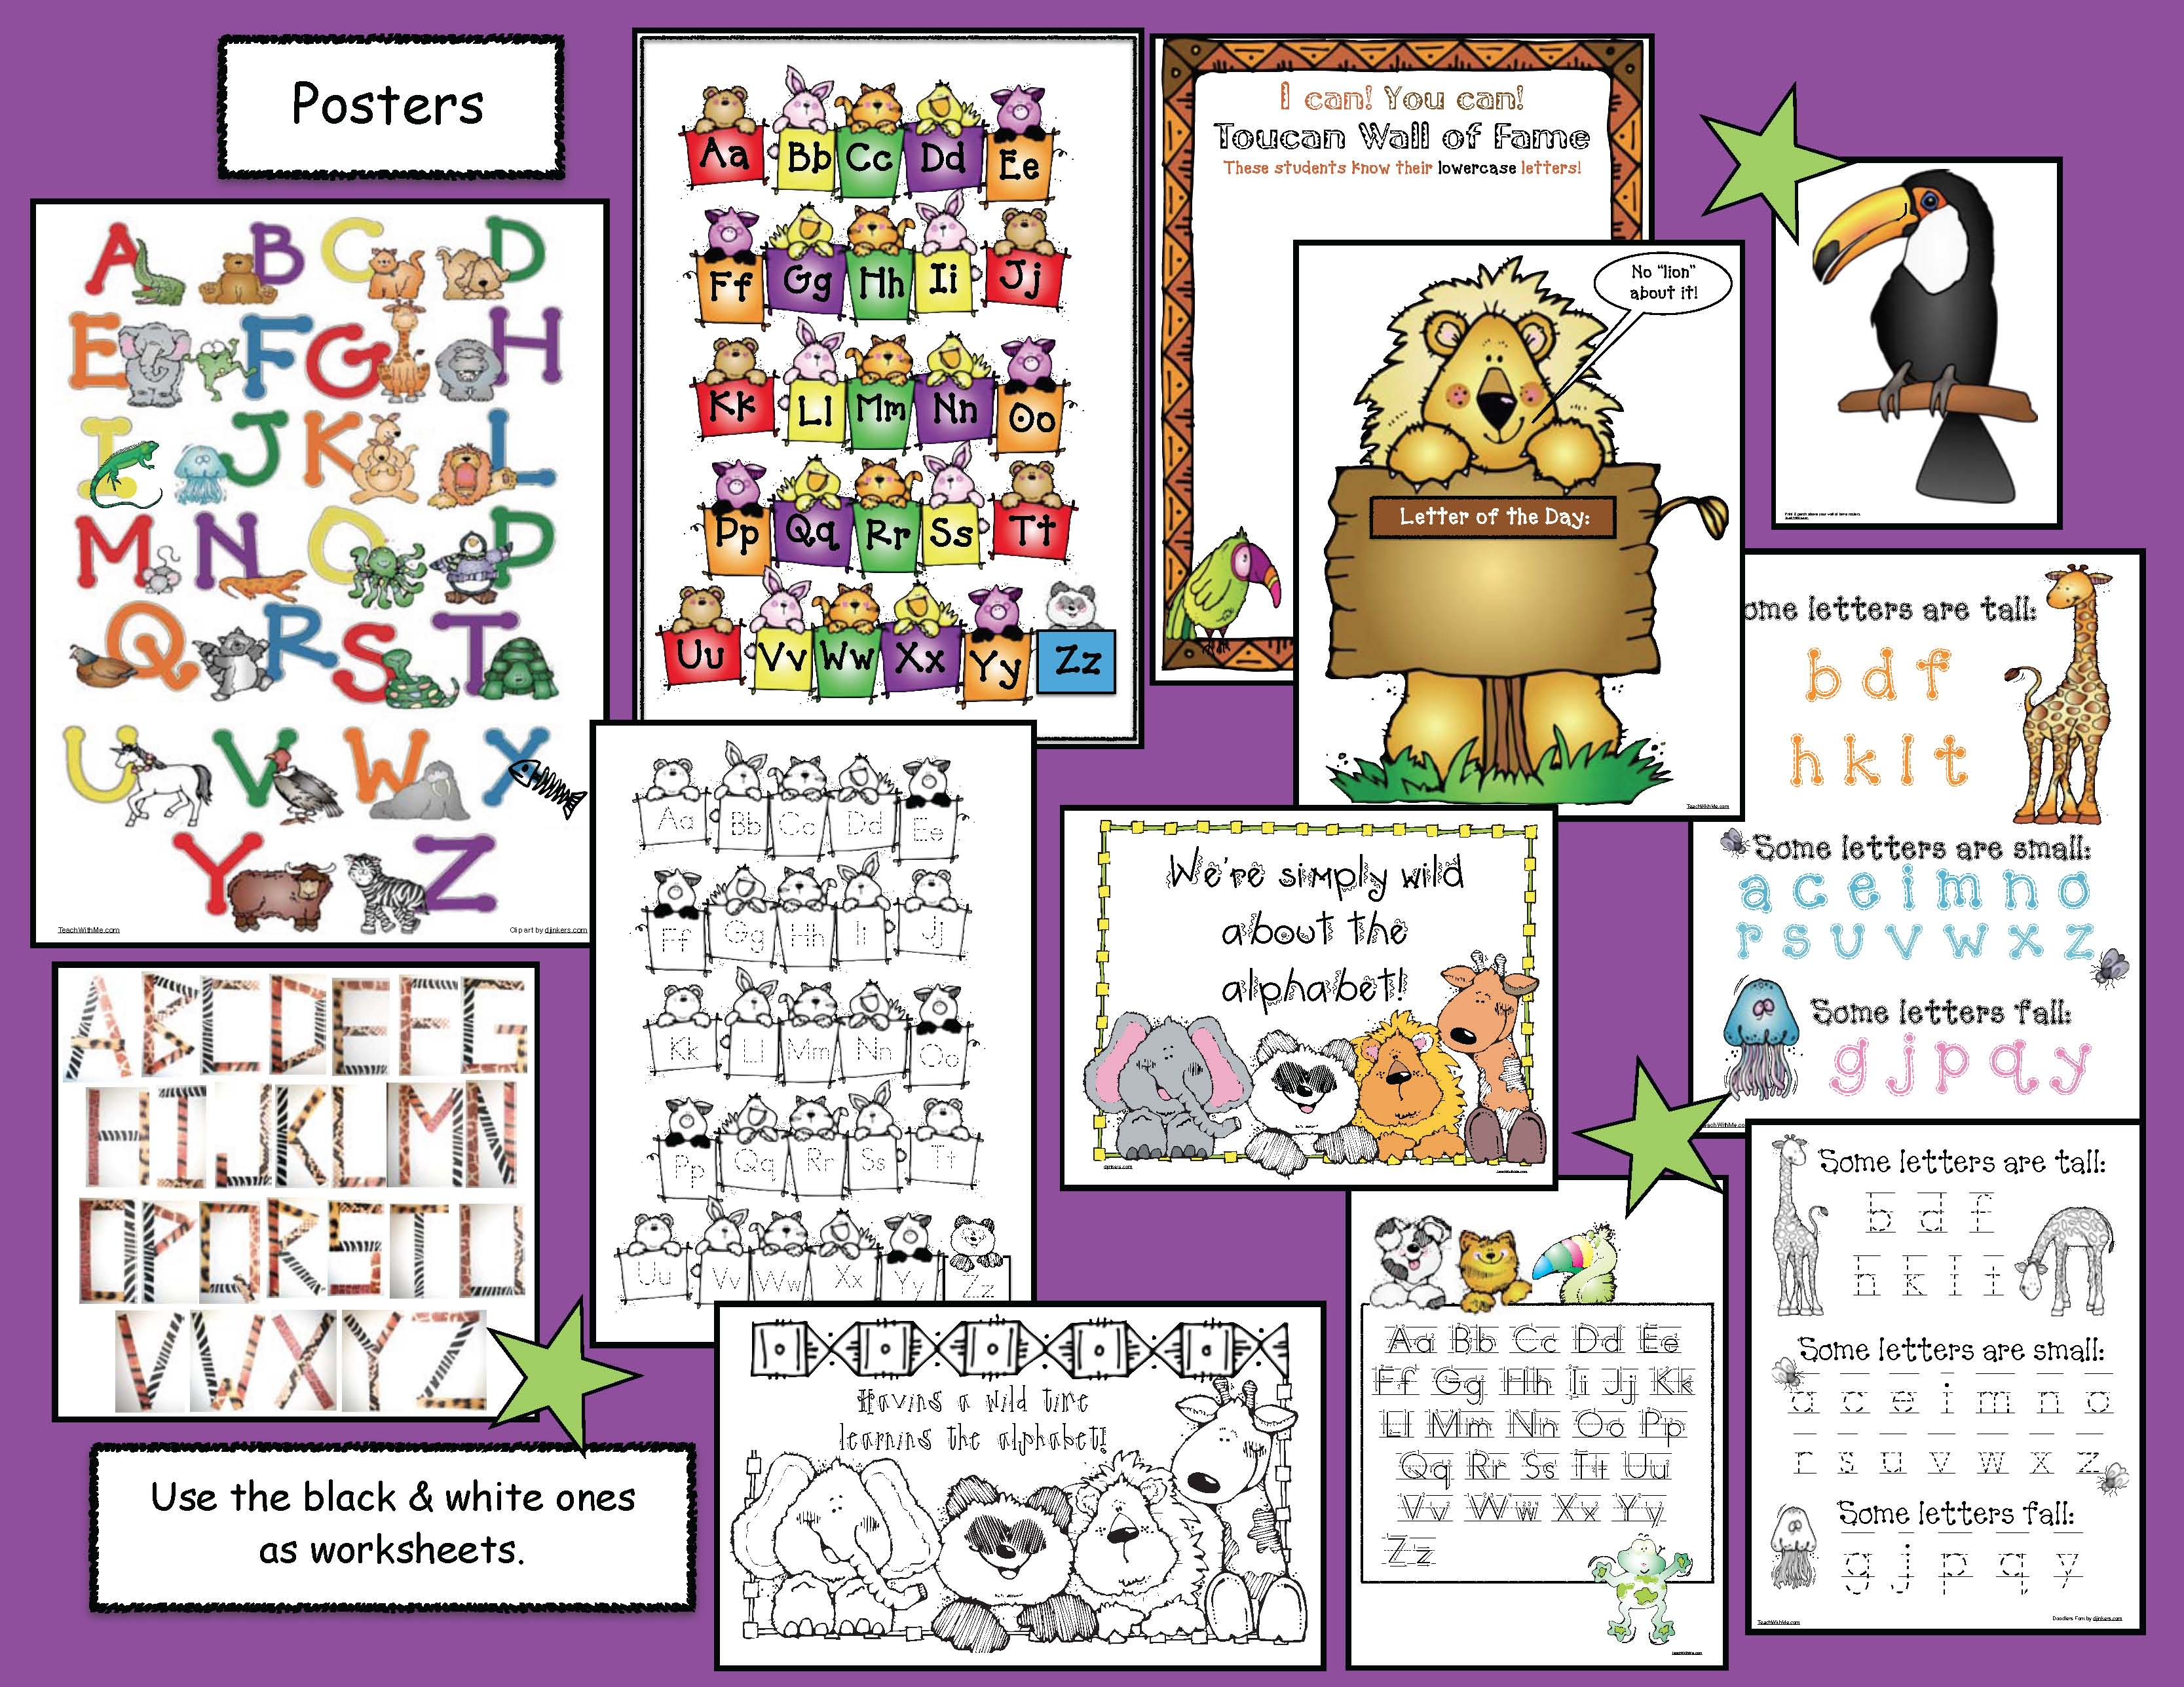 alphabet activities, alphabet crafts, alphabet posters, alphabet cards, alphabet games, alphabet poems, alphabet crafts, alphabet centers, alphabet assessments, animal activities, animal alphabet, alphabet emergent reader, alphabet booklet, animal alphabet booklet, alphabet worksheets